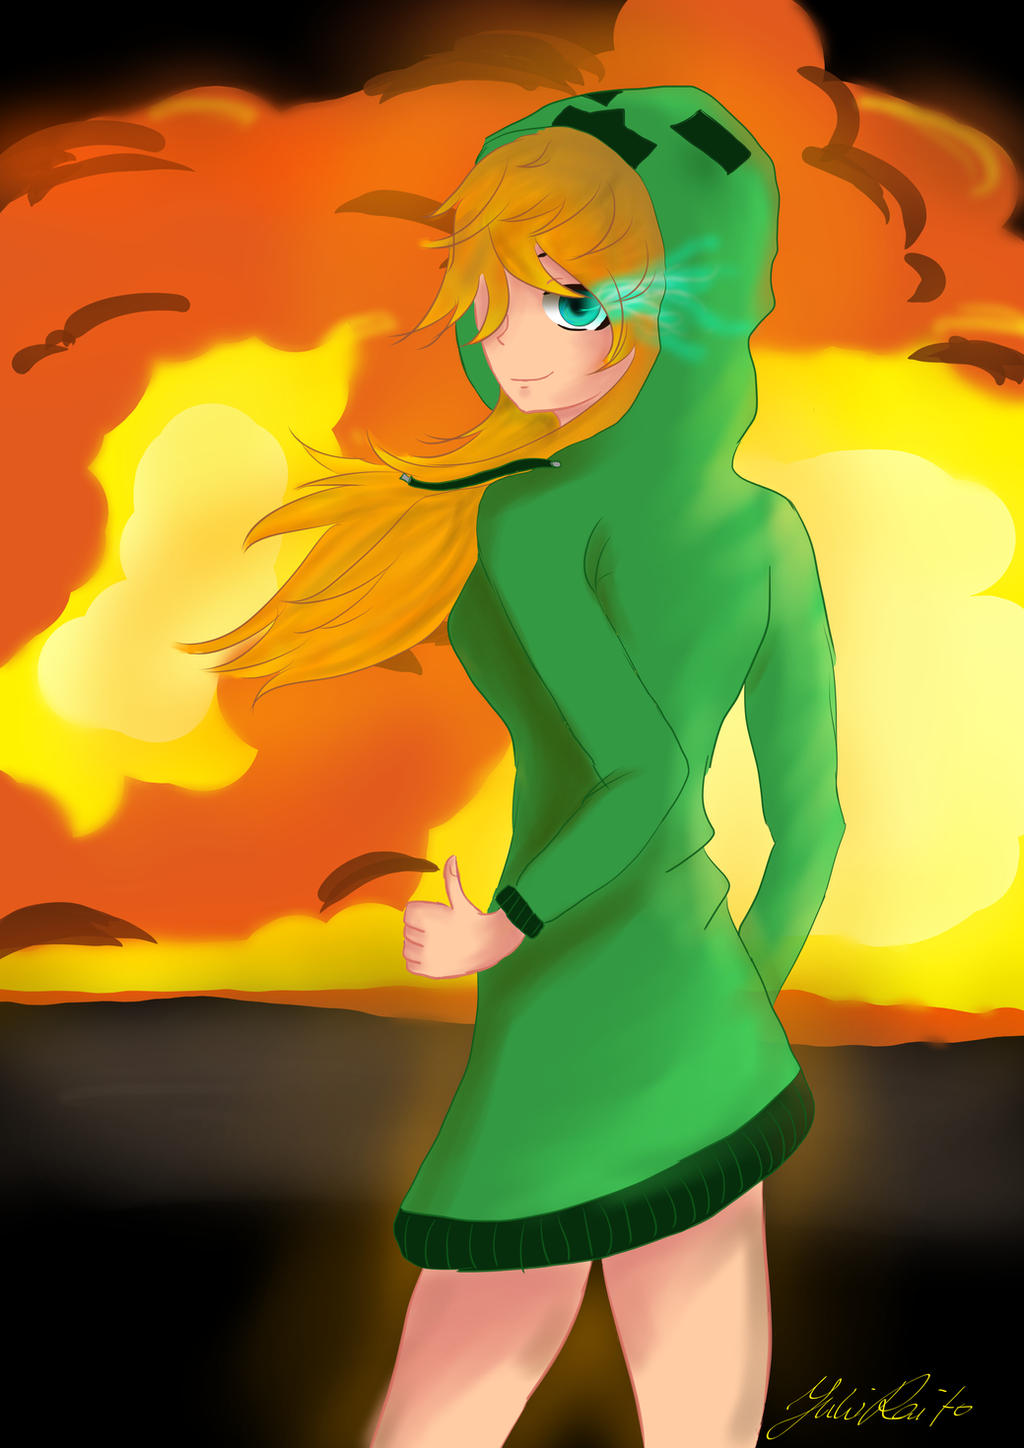 Minecraft creeper girl speedpainting drawing by - Creeper anime girl ...